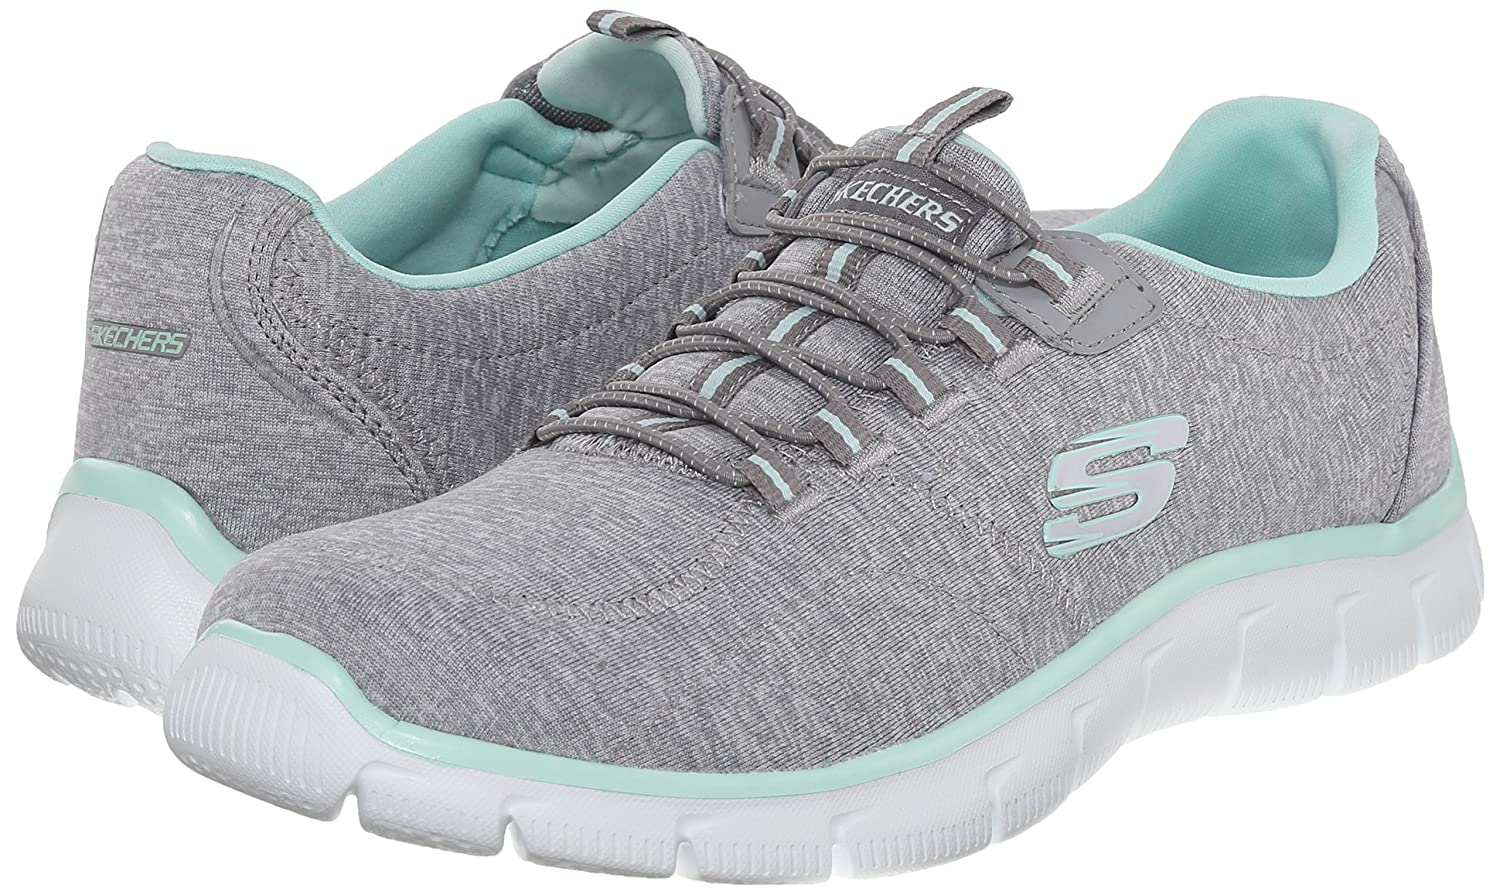 7139c858e178 ... Skechers Sport B00ZHXB5VS Women s Empire Fashion Sneaker B00ZHXB5VS  Sport 8 B(M) US